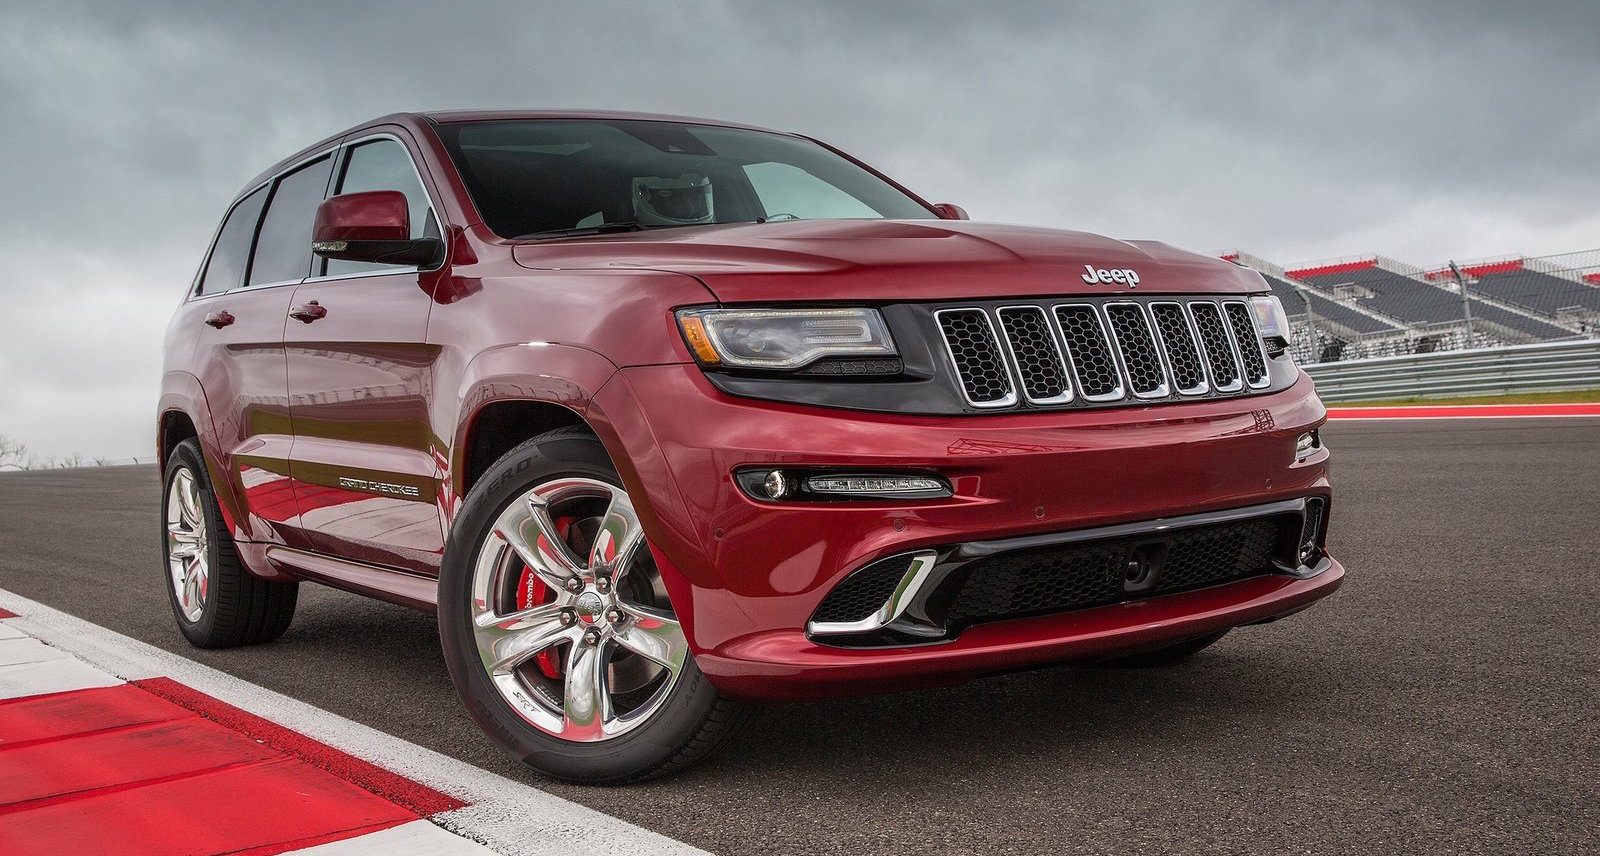 jeep grand cherokee srt 6 4l v8 coming to malaysia. Black Bedroom Furniture Sets. Home Design Ideas